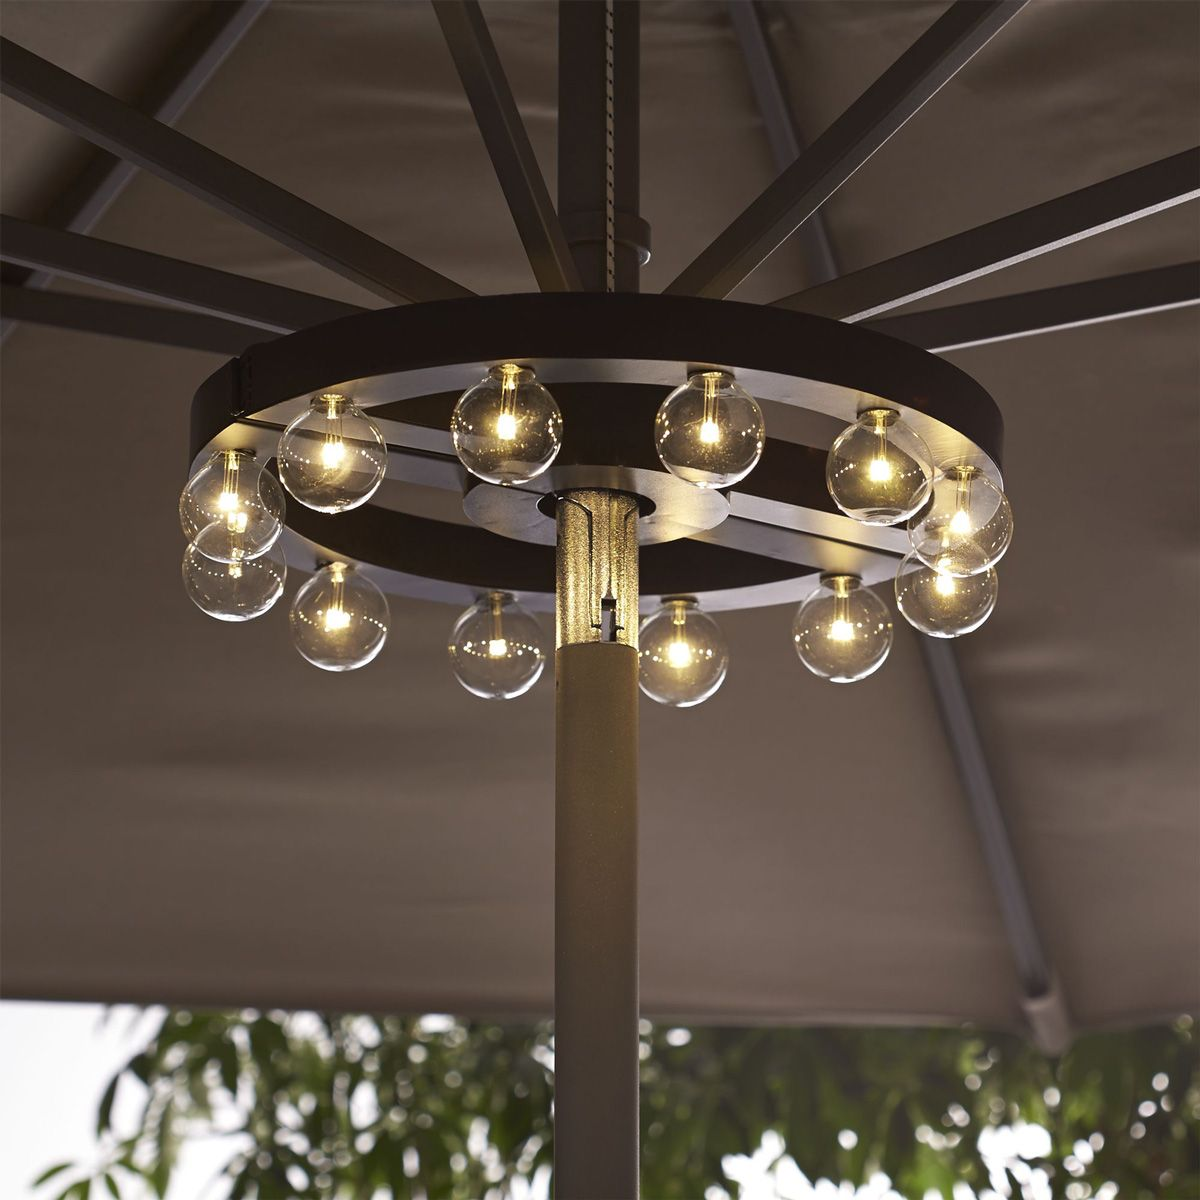 Solar Lights For Patio Umbrellas Prepossessing Patio Umbrella Marquee Lights  Pinterest  Patio Umbrellas Marquee Design Decoration